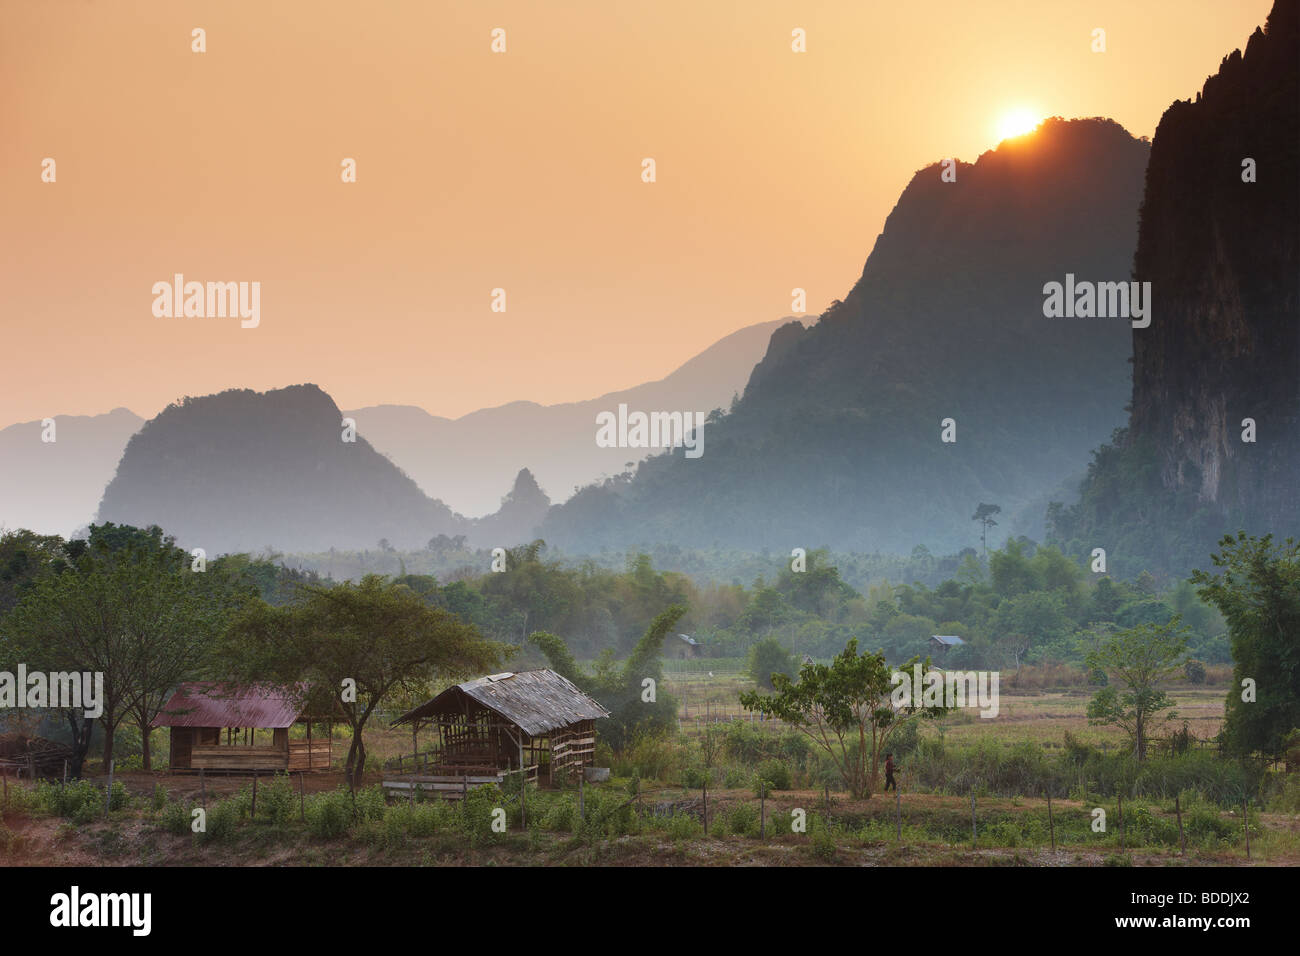 the sun dissappearing over the mountains nr Vang Vieng, Laos - Stock Image